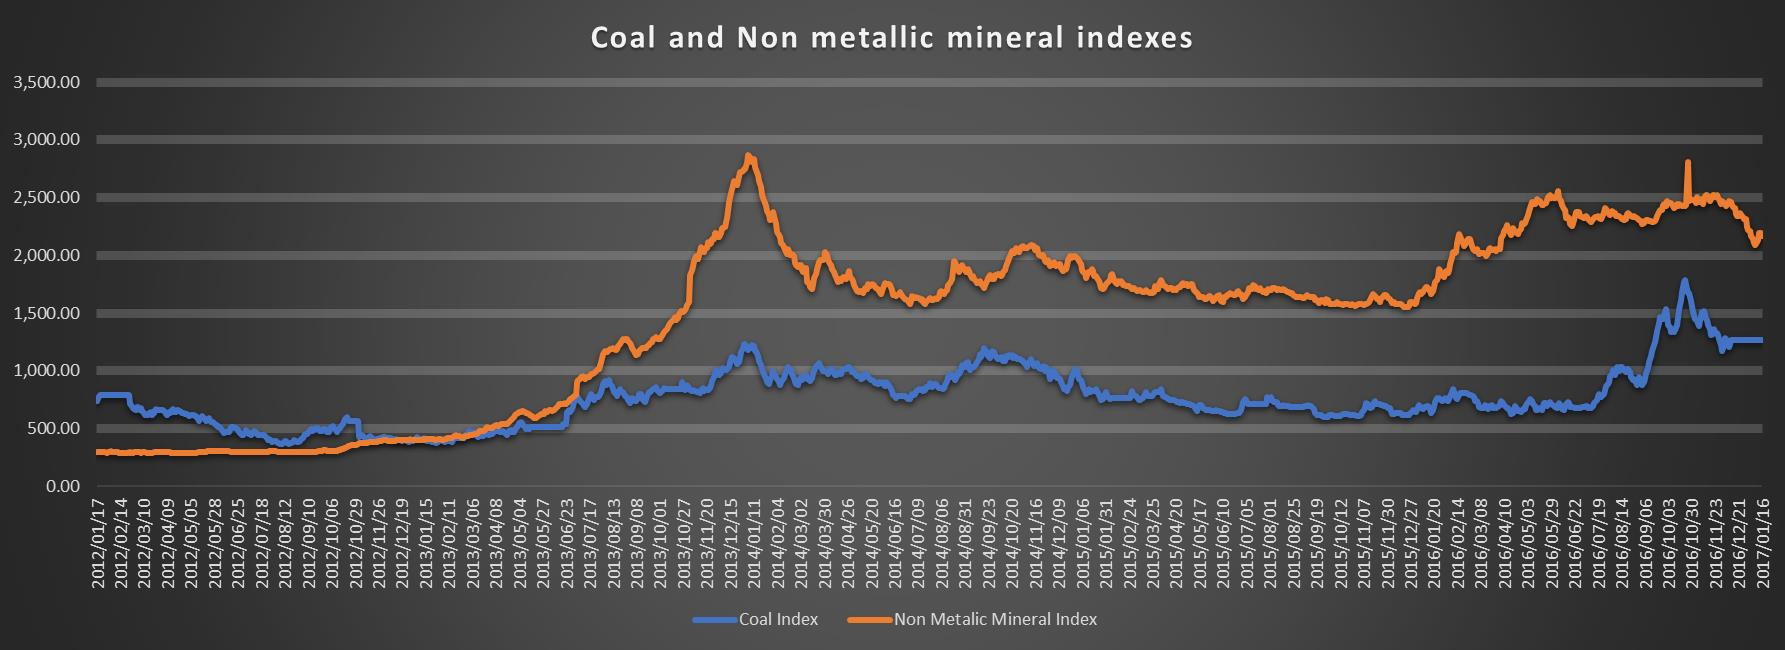 coal and non metallic mineral indexes